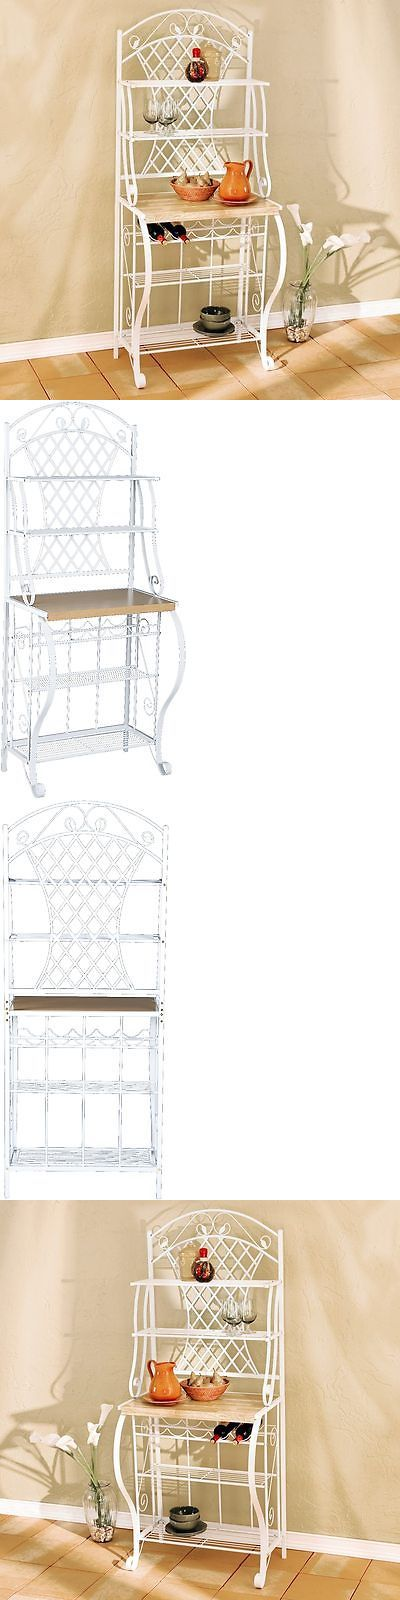 Bakers Racks 20482: White Metal Kitchen Bakers Rack Wine Storage Home Shelving Decor Display Stand -> BUY IT NOW ONLY: $130.01 on eBay!